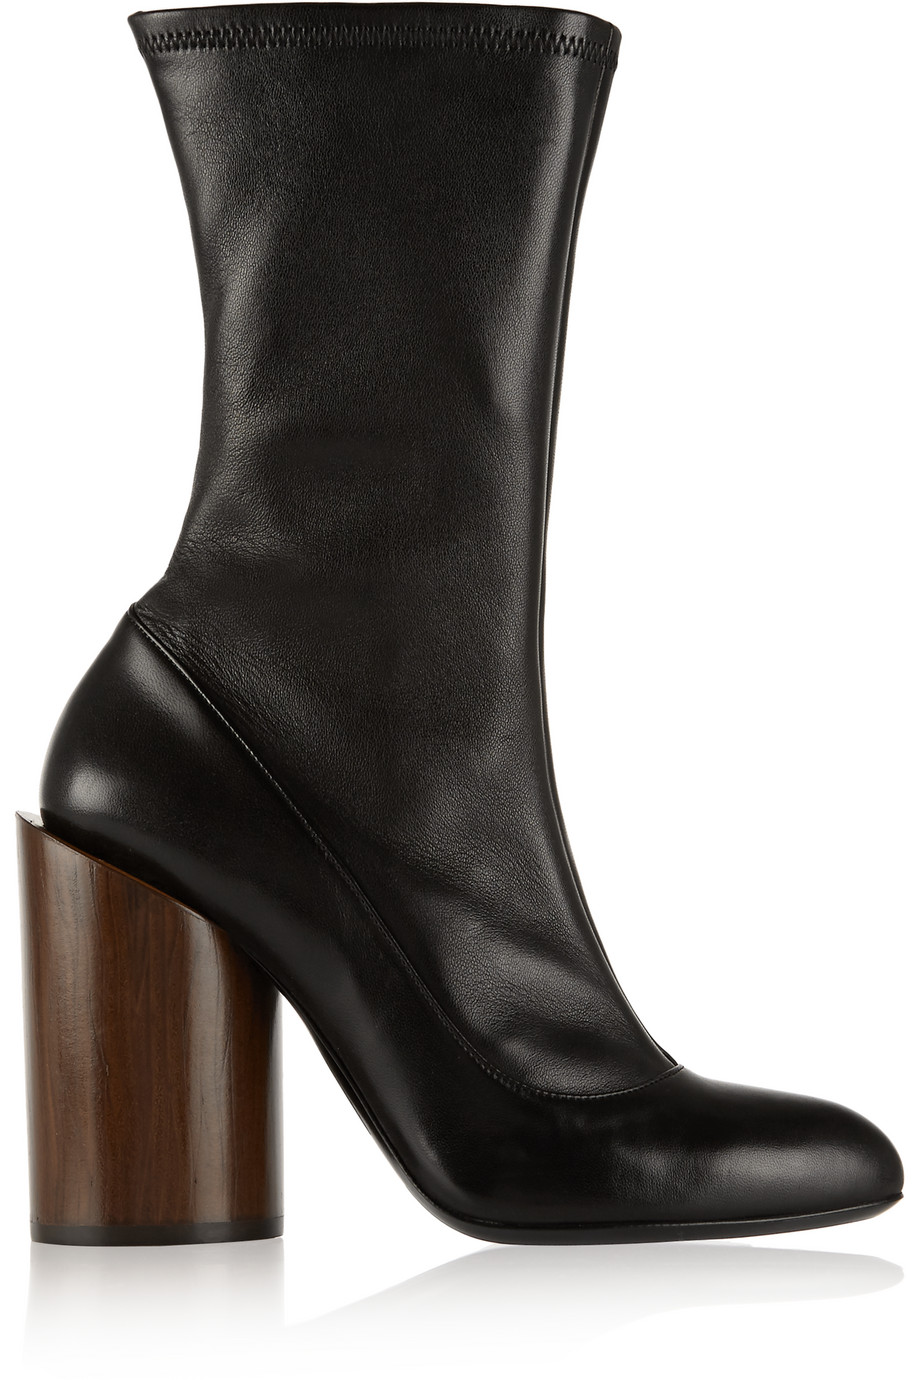 Givenchy Boots in Black Stretch-Leather, Women's US Size: 9, Size: 39.5